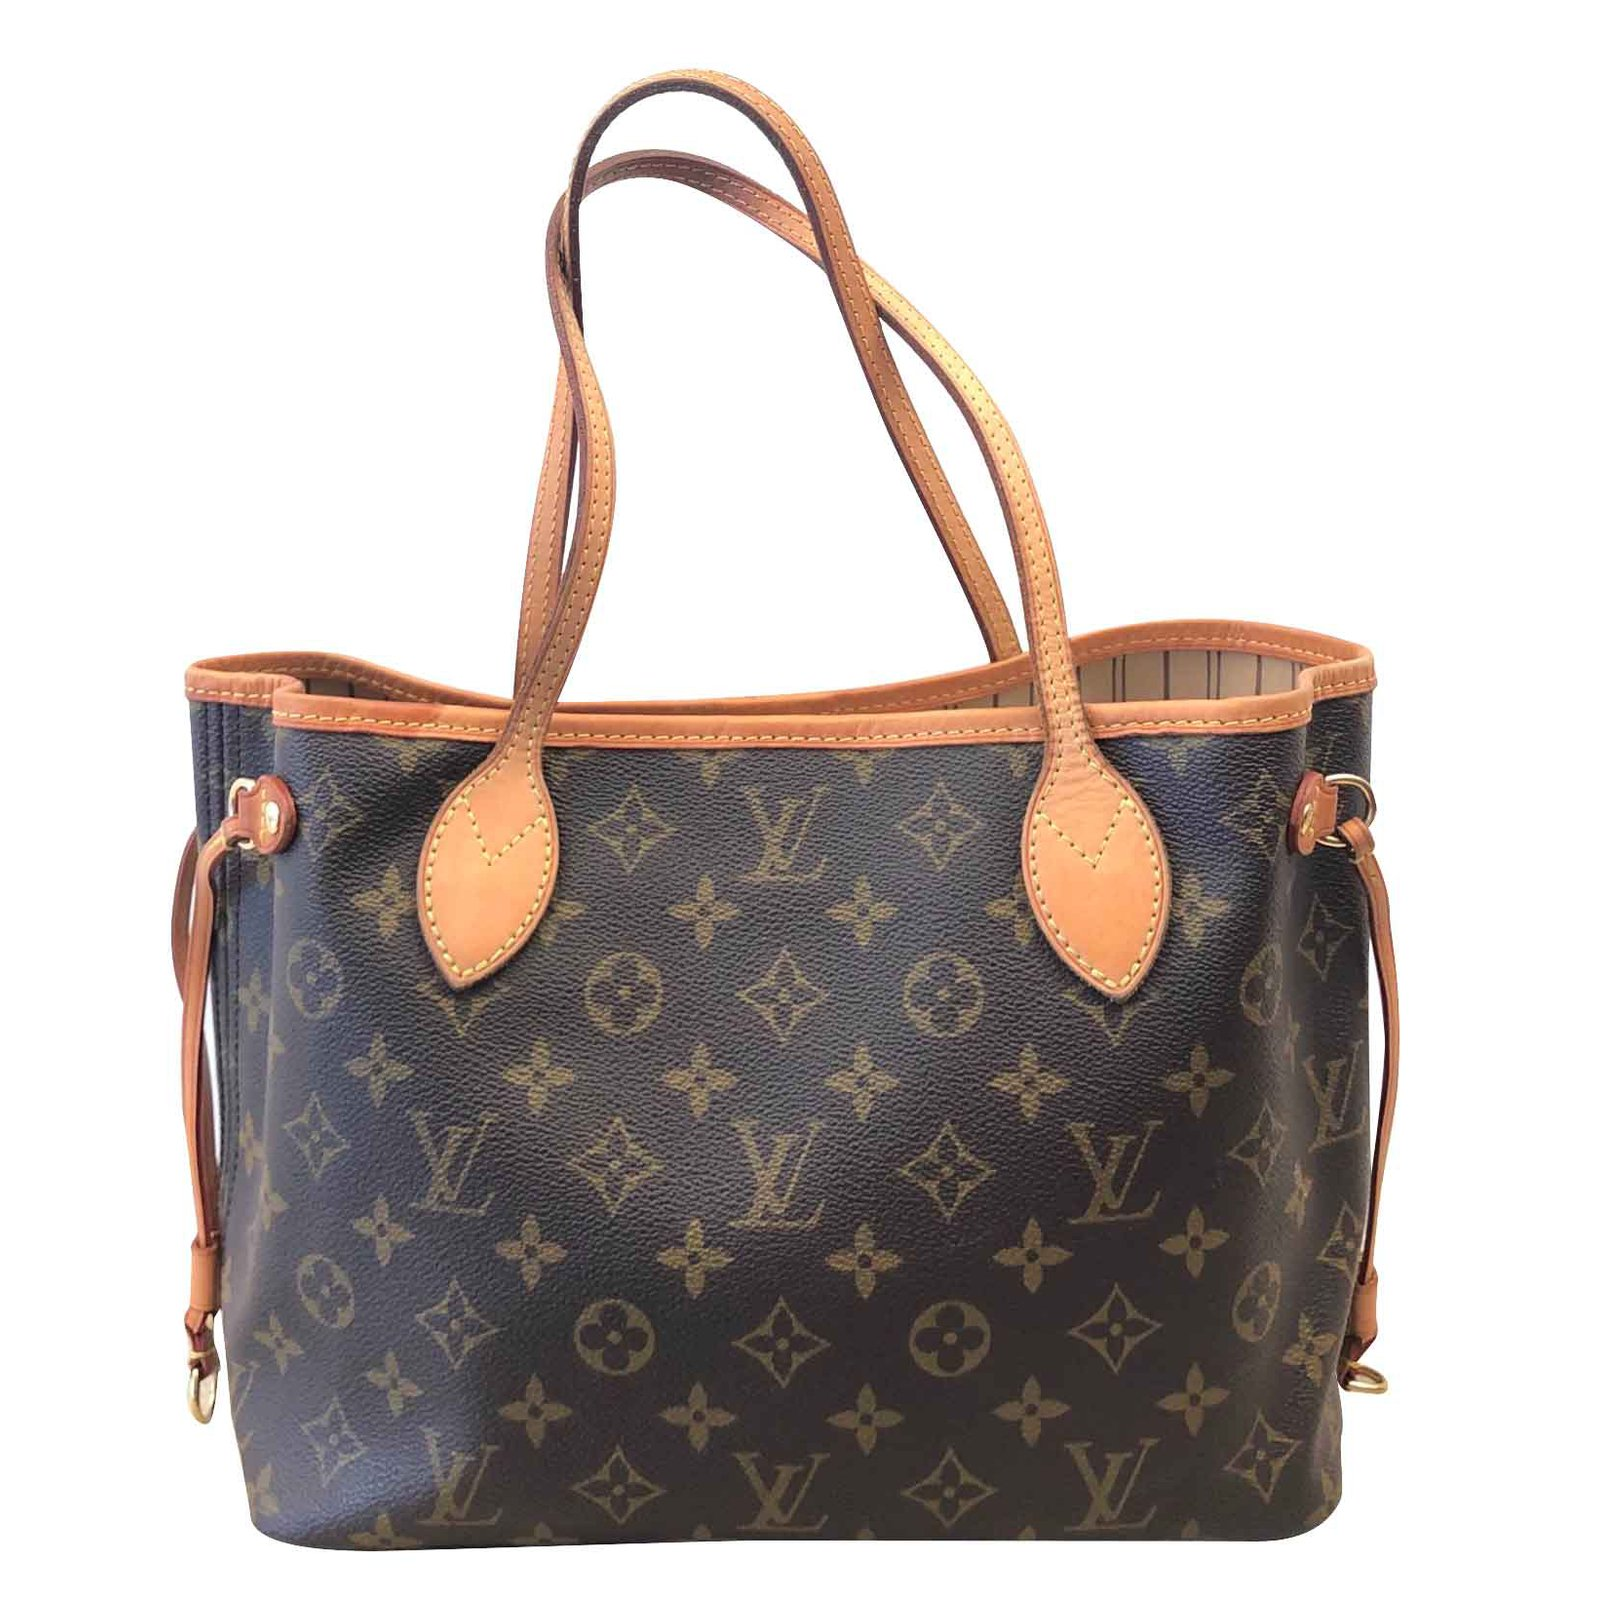 Sacs à main Louis Vuitton Sac Louis Vuitton Neverfull Toile Marron  ref.105668 05af8e31af4